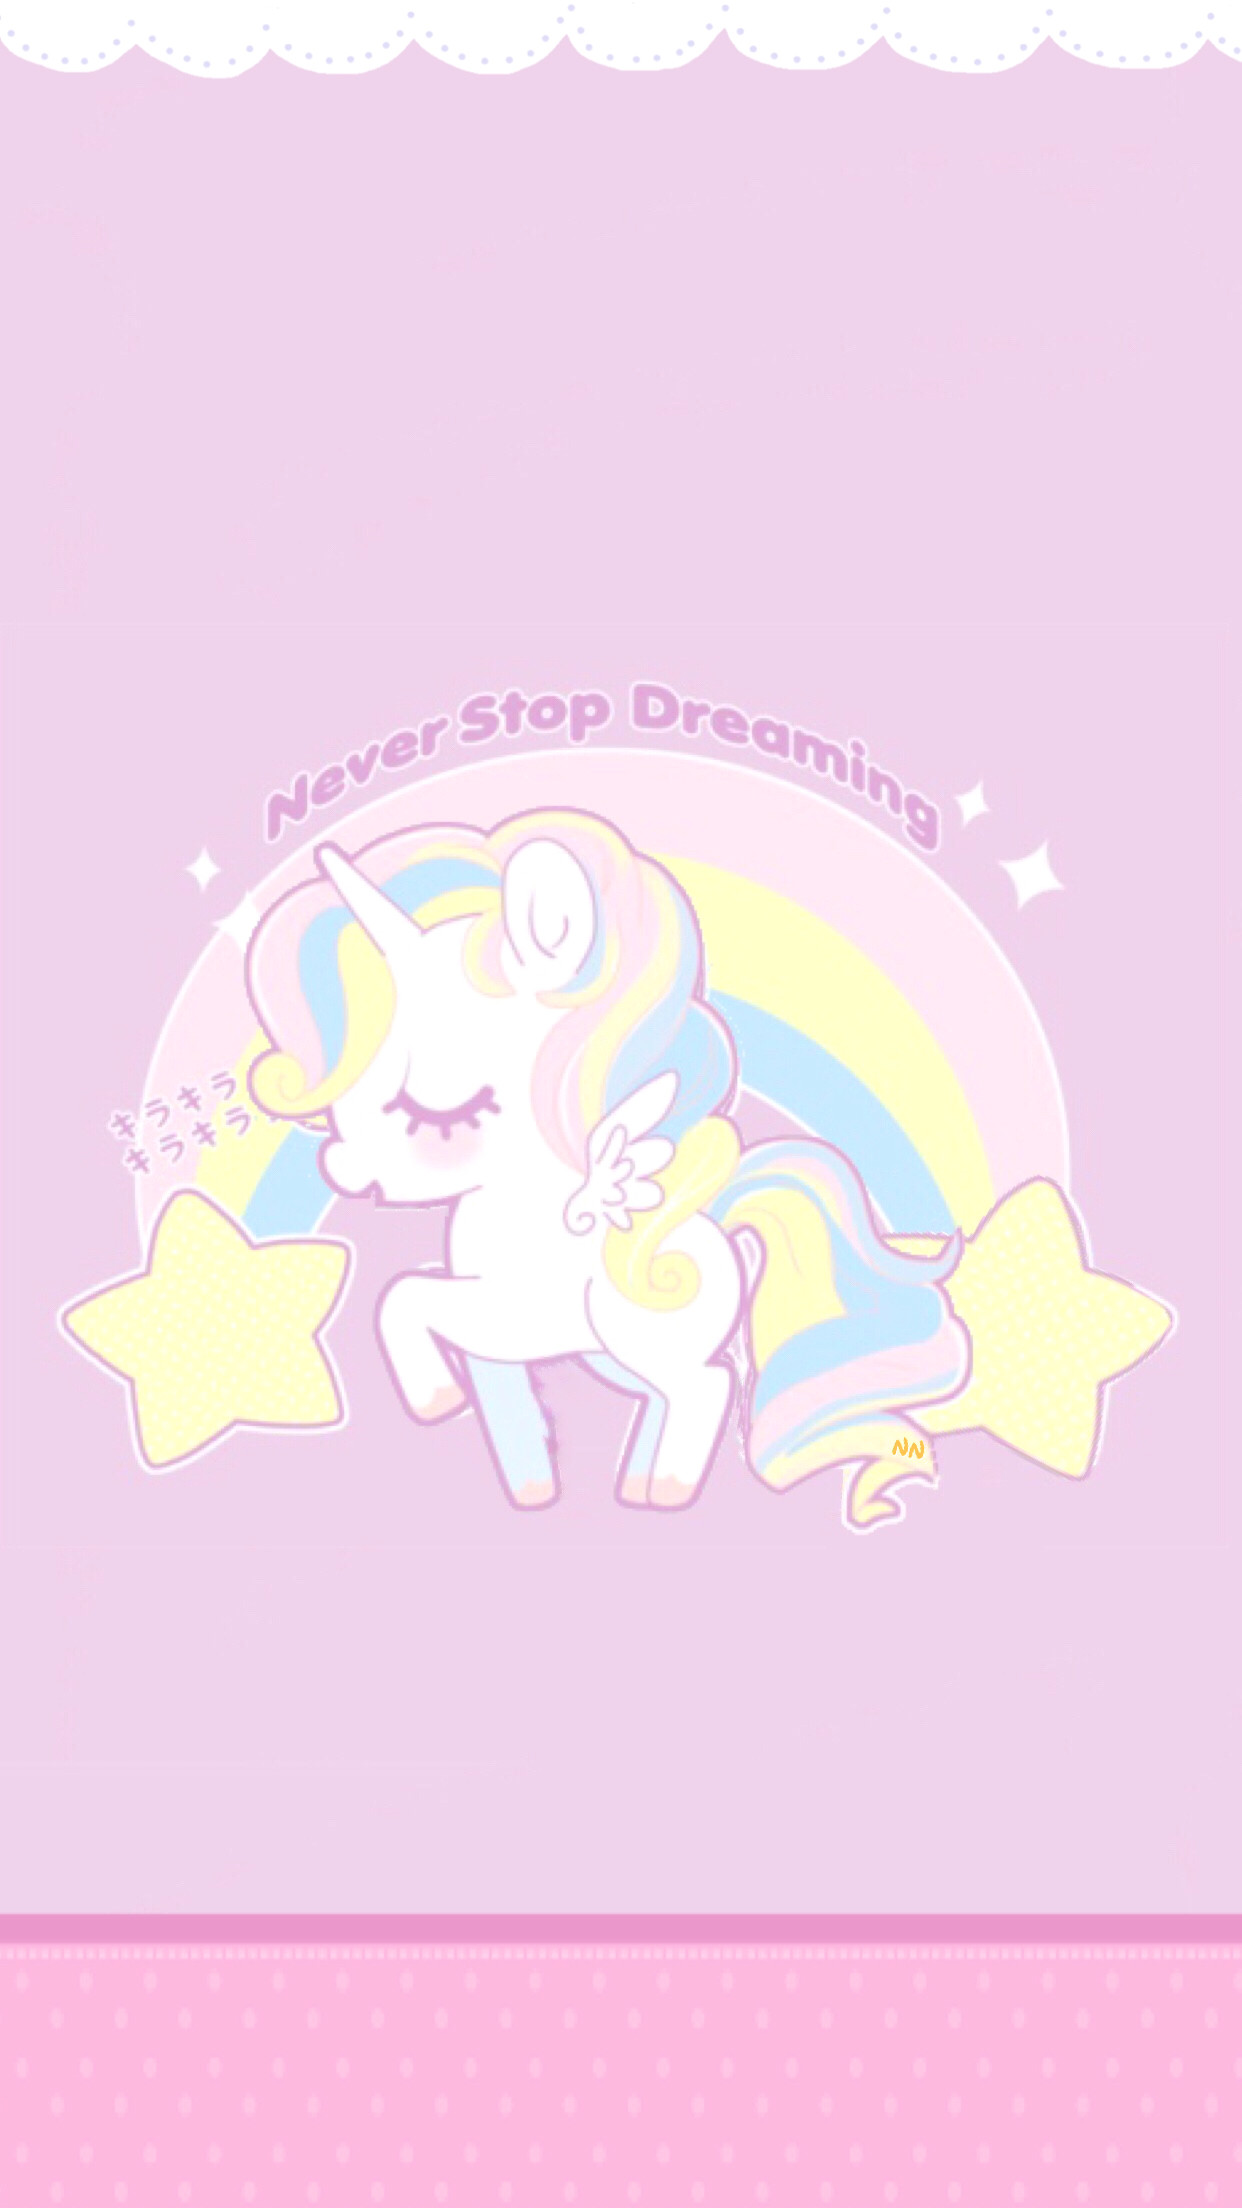 Res: 1242x2208, Wallpapers · Belle · Unicorn